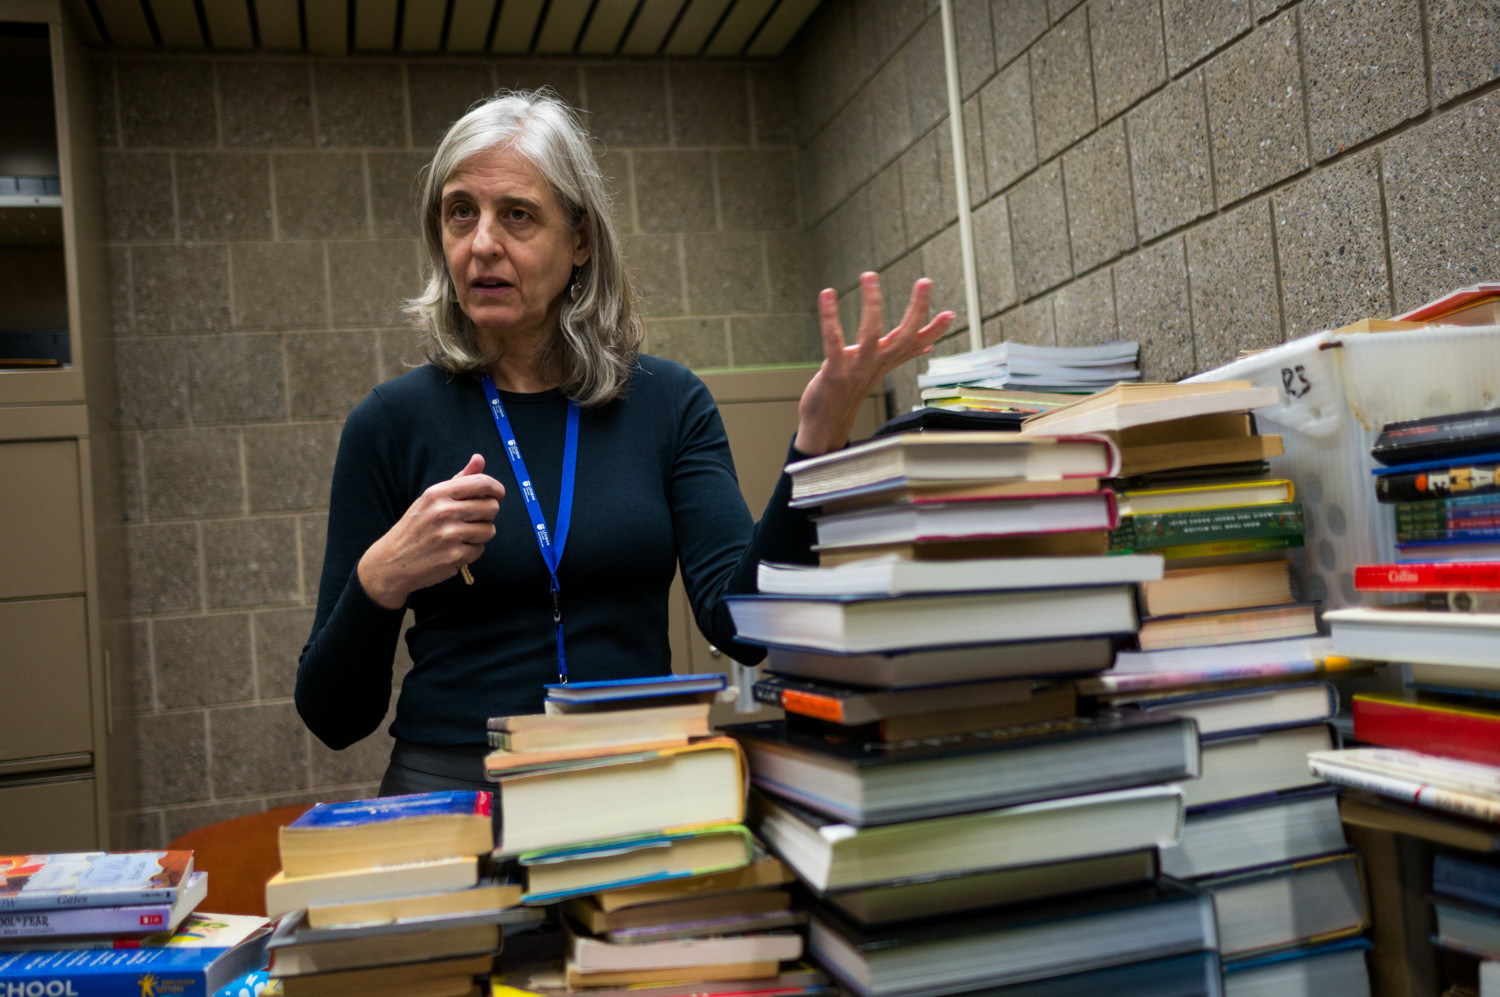 Martha Lerski, a librarian at Lehman College's business library, organized a book drive to assist schools in Barbuda impacted by Hurricane Irma in September.